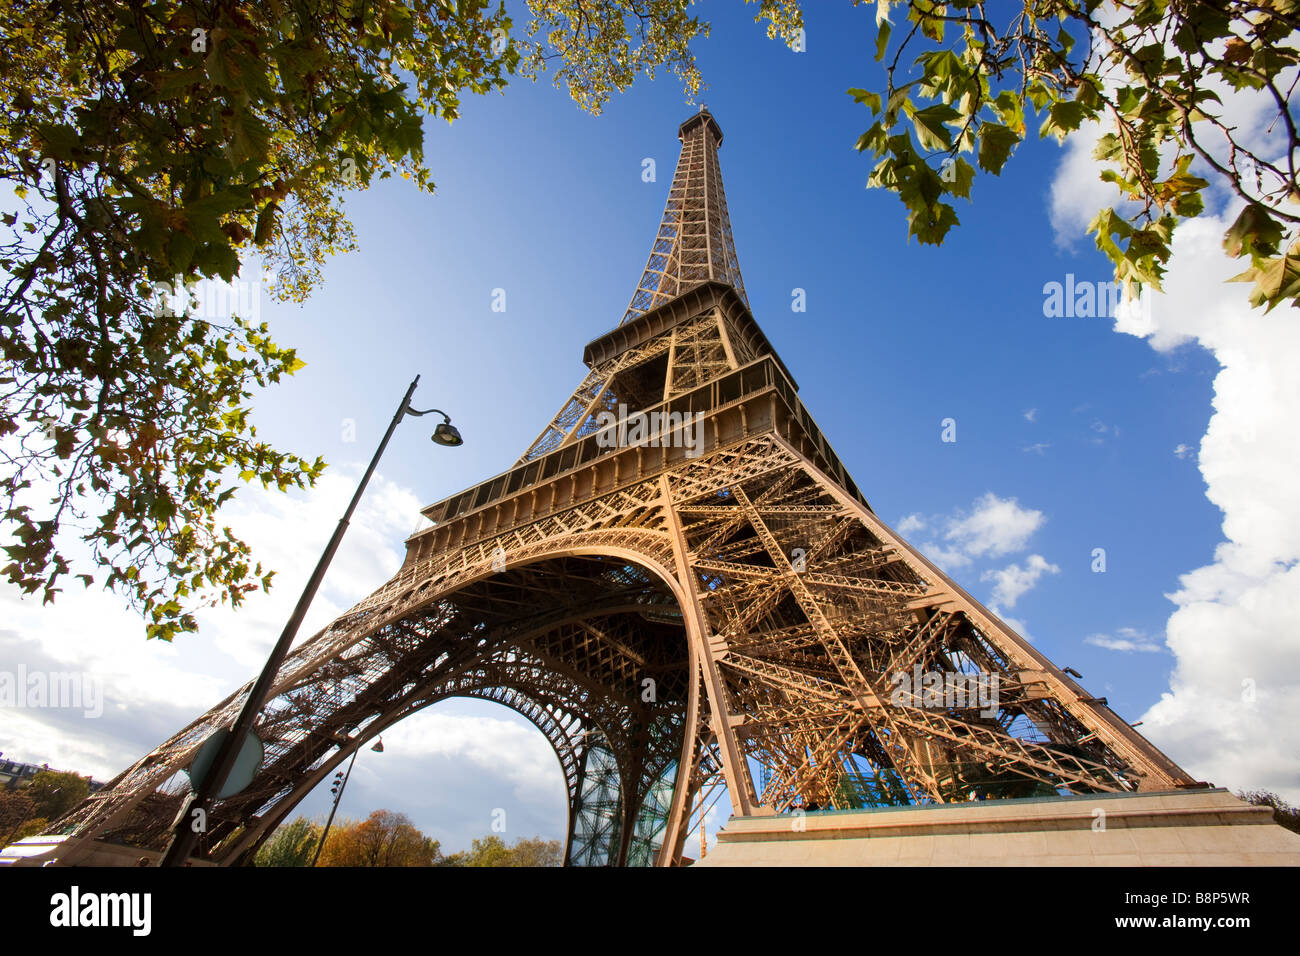 Eiffel Tower Surrounded by Autumnal Trees Paris France - Stock Image